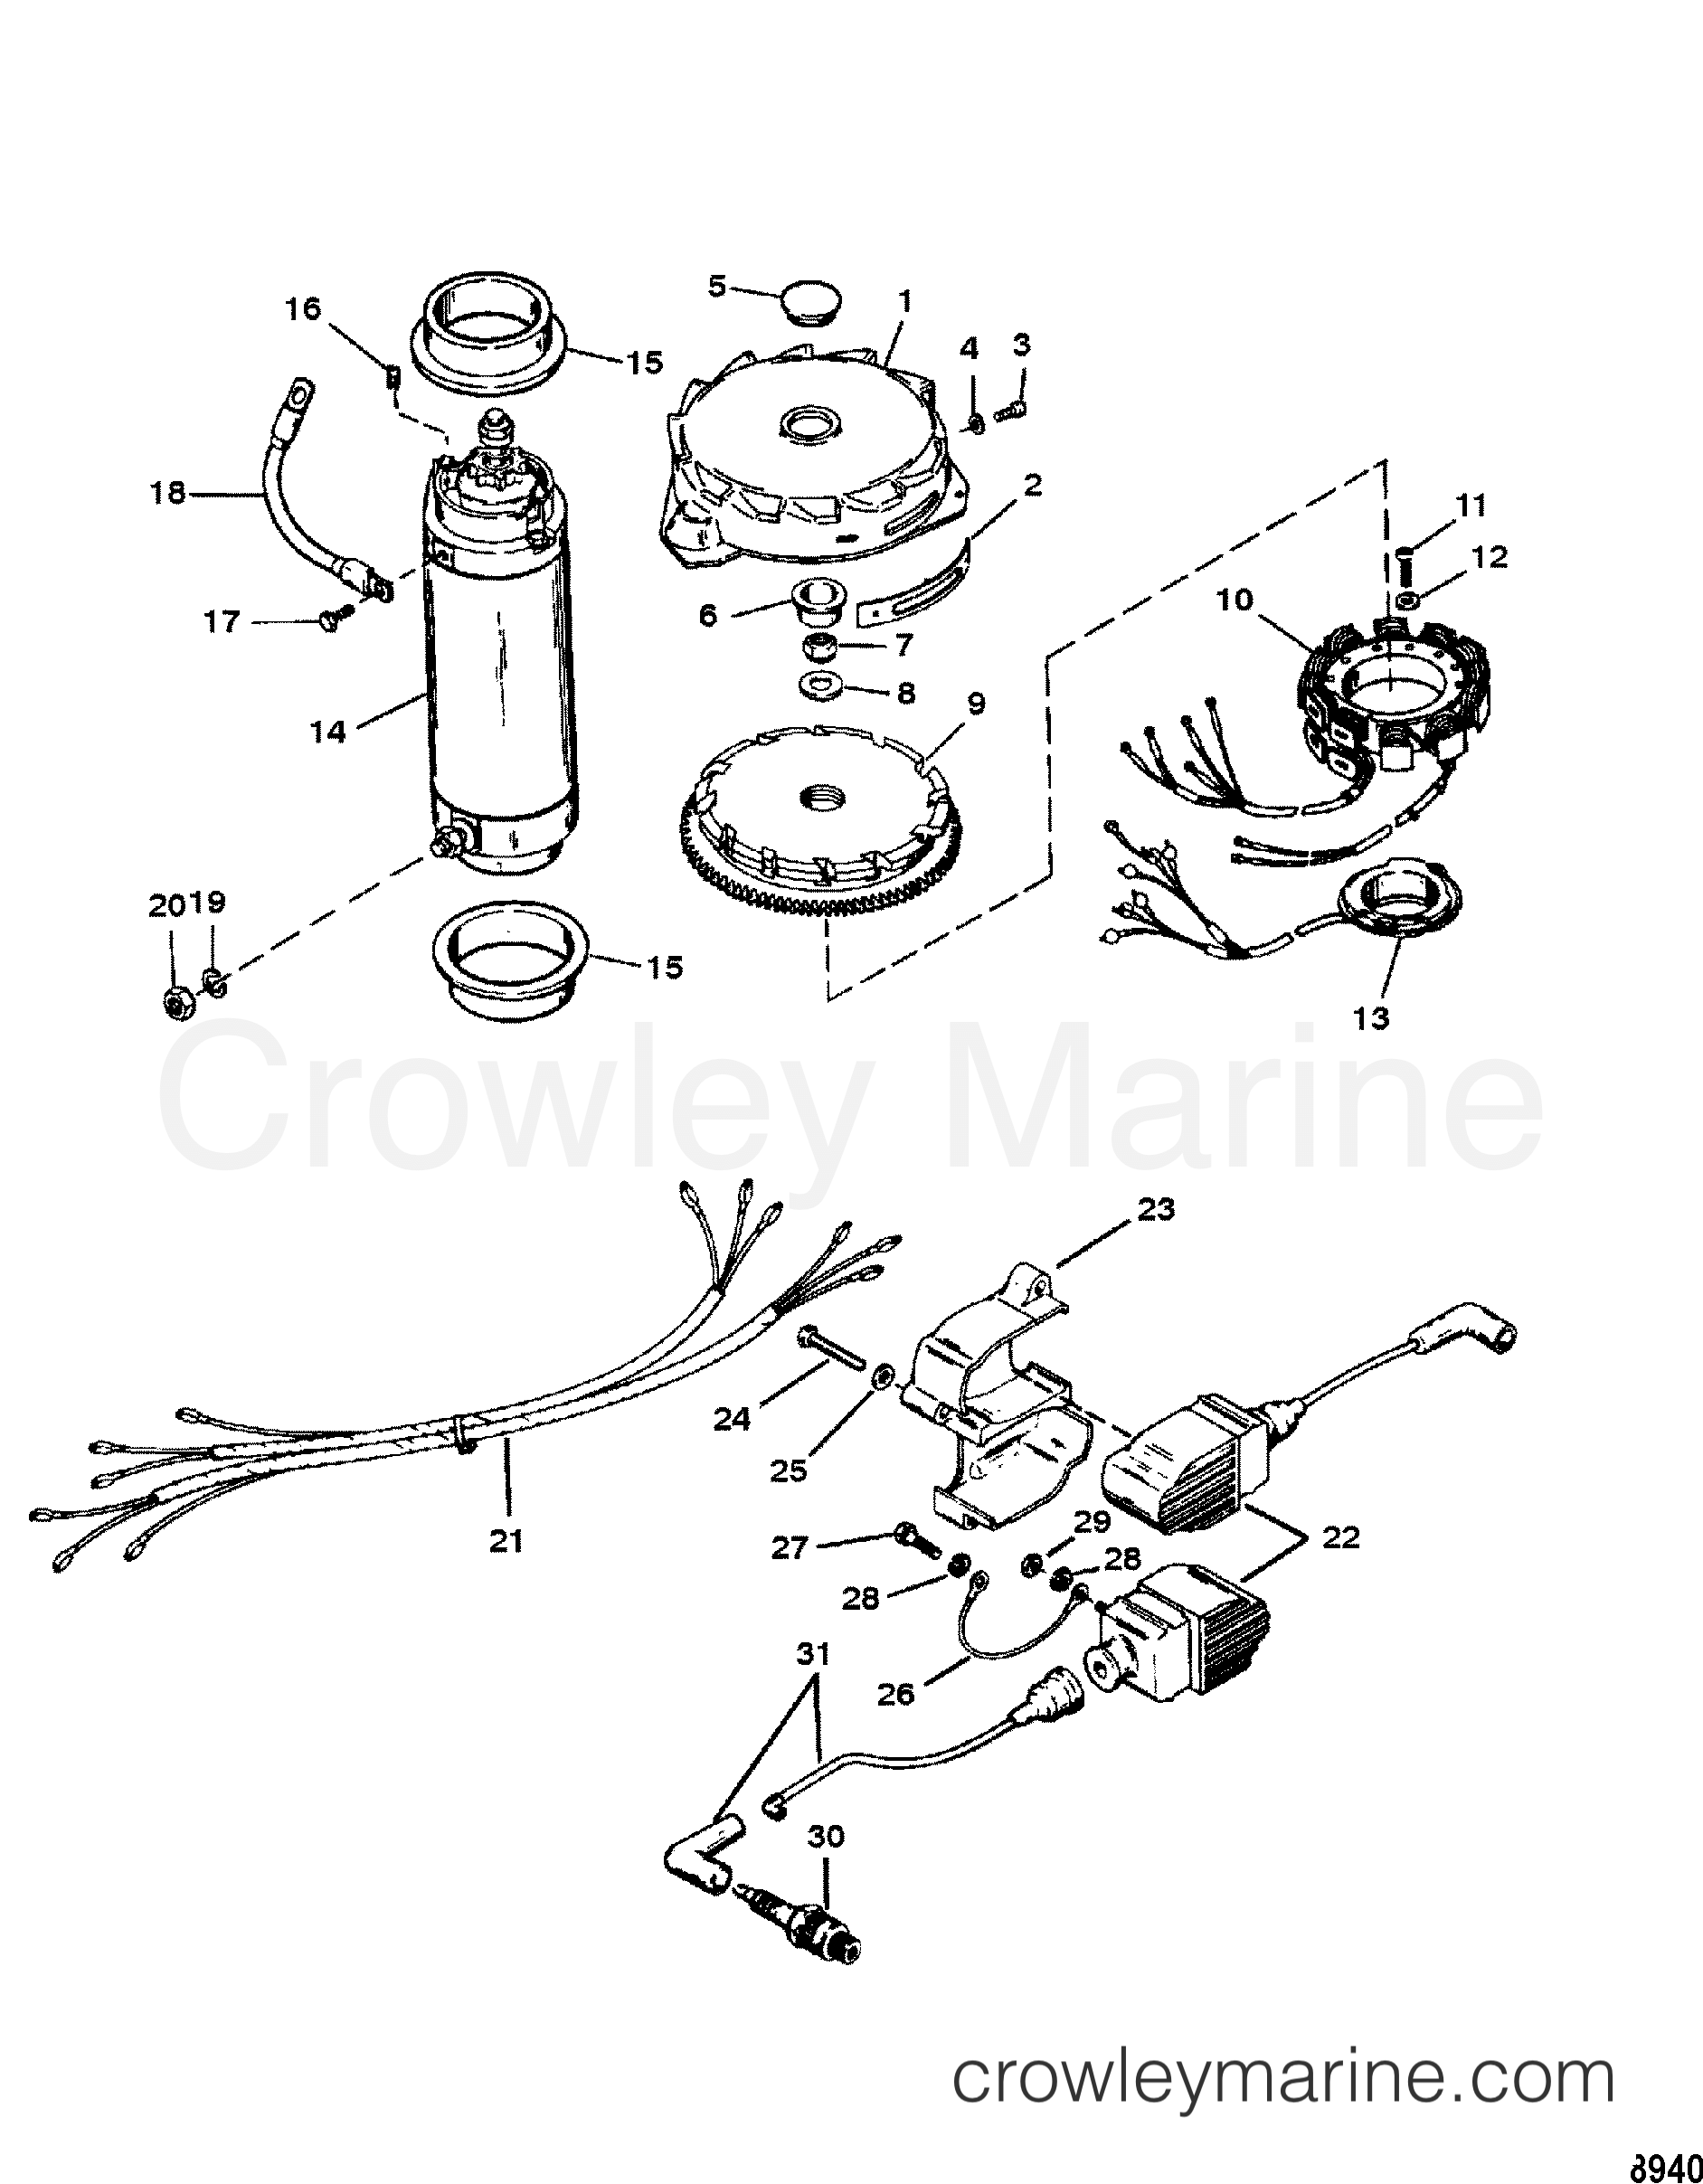 1997 Mercury Race Outboard 150 [PROMAX] - 1915313TH - FLYWHEEL, STARTER MOTOR AND IGNITION COILS section